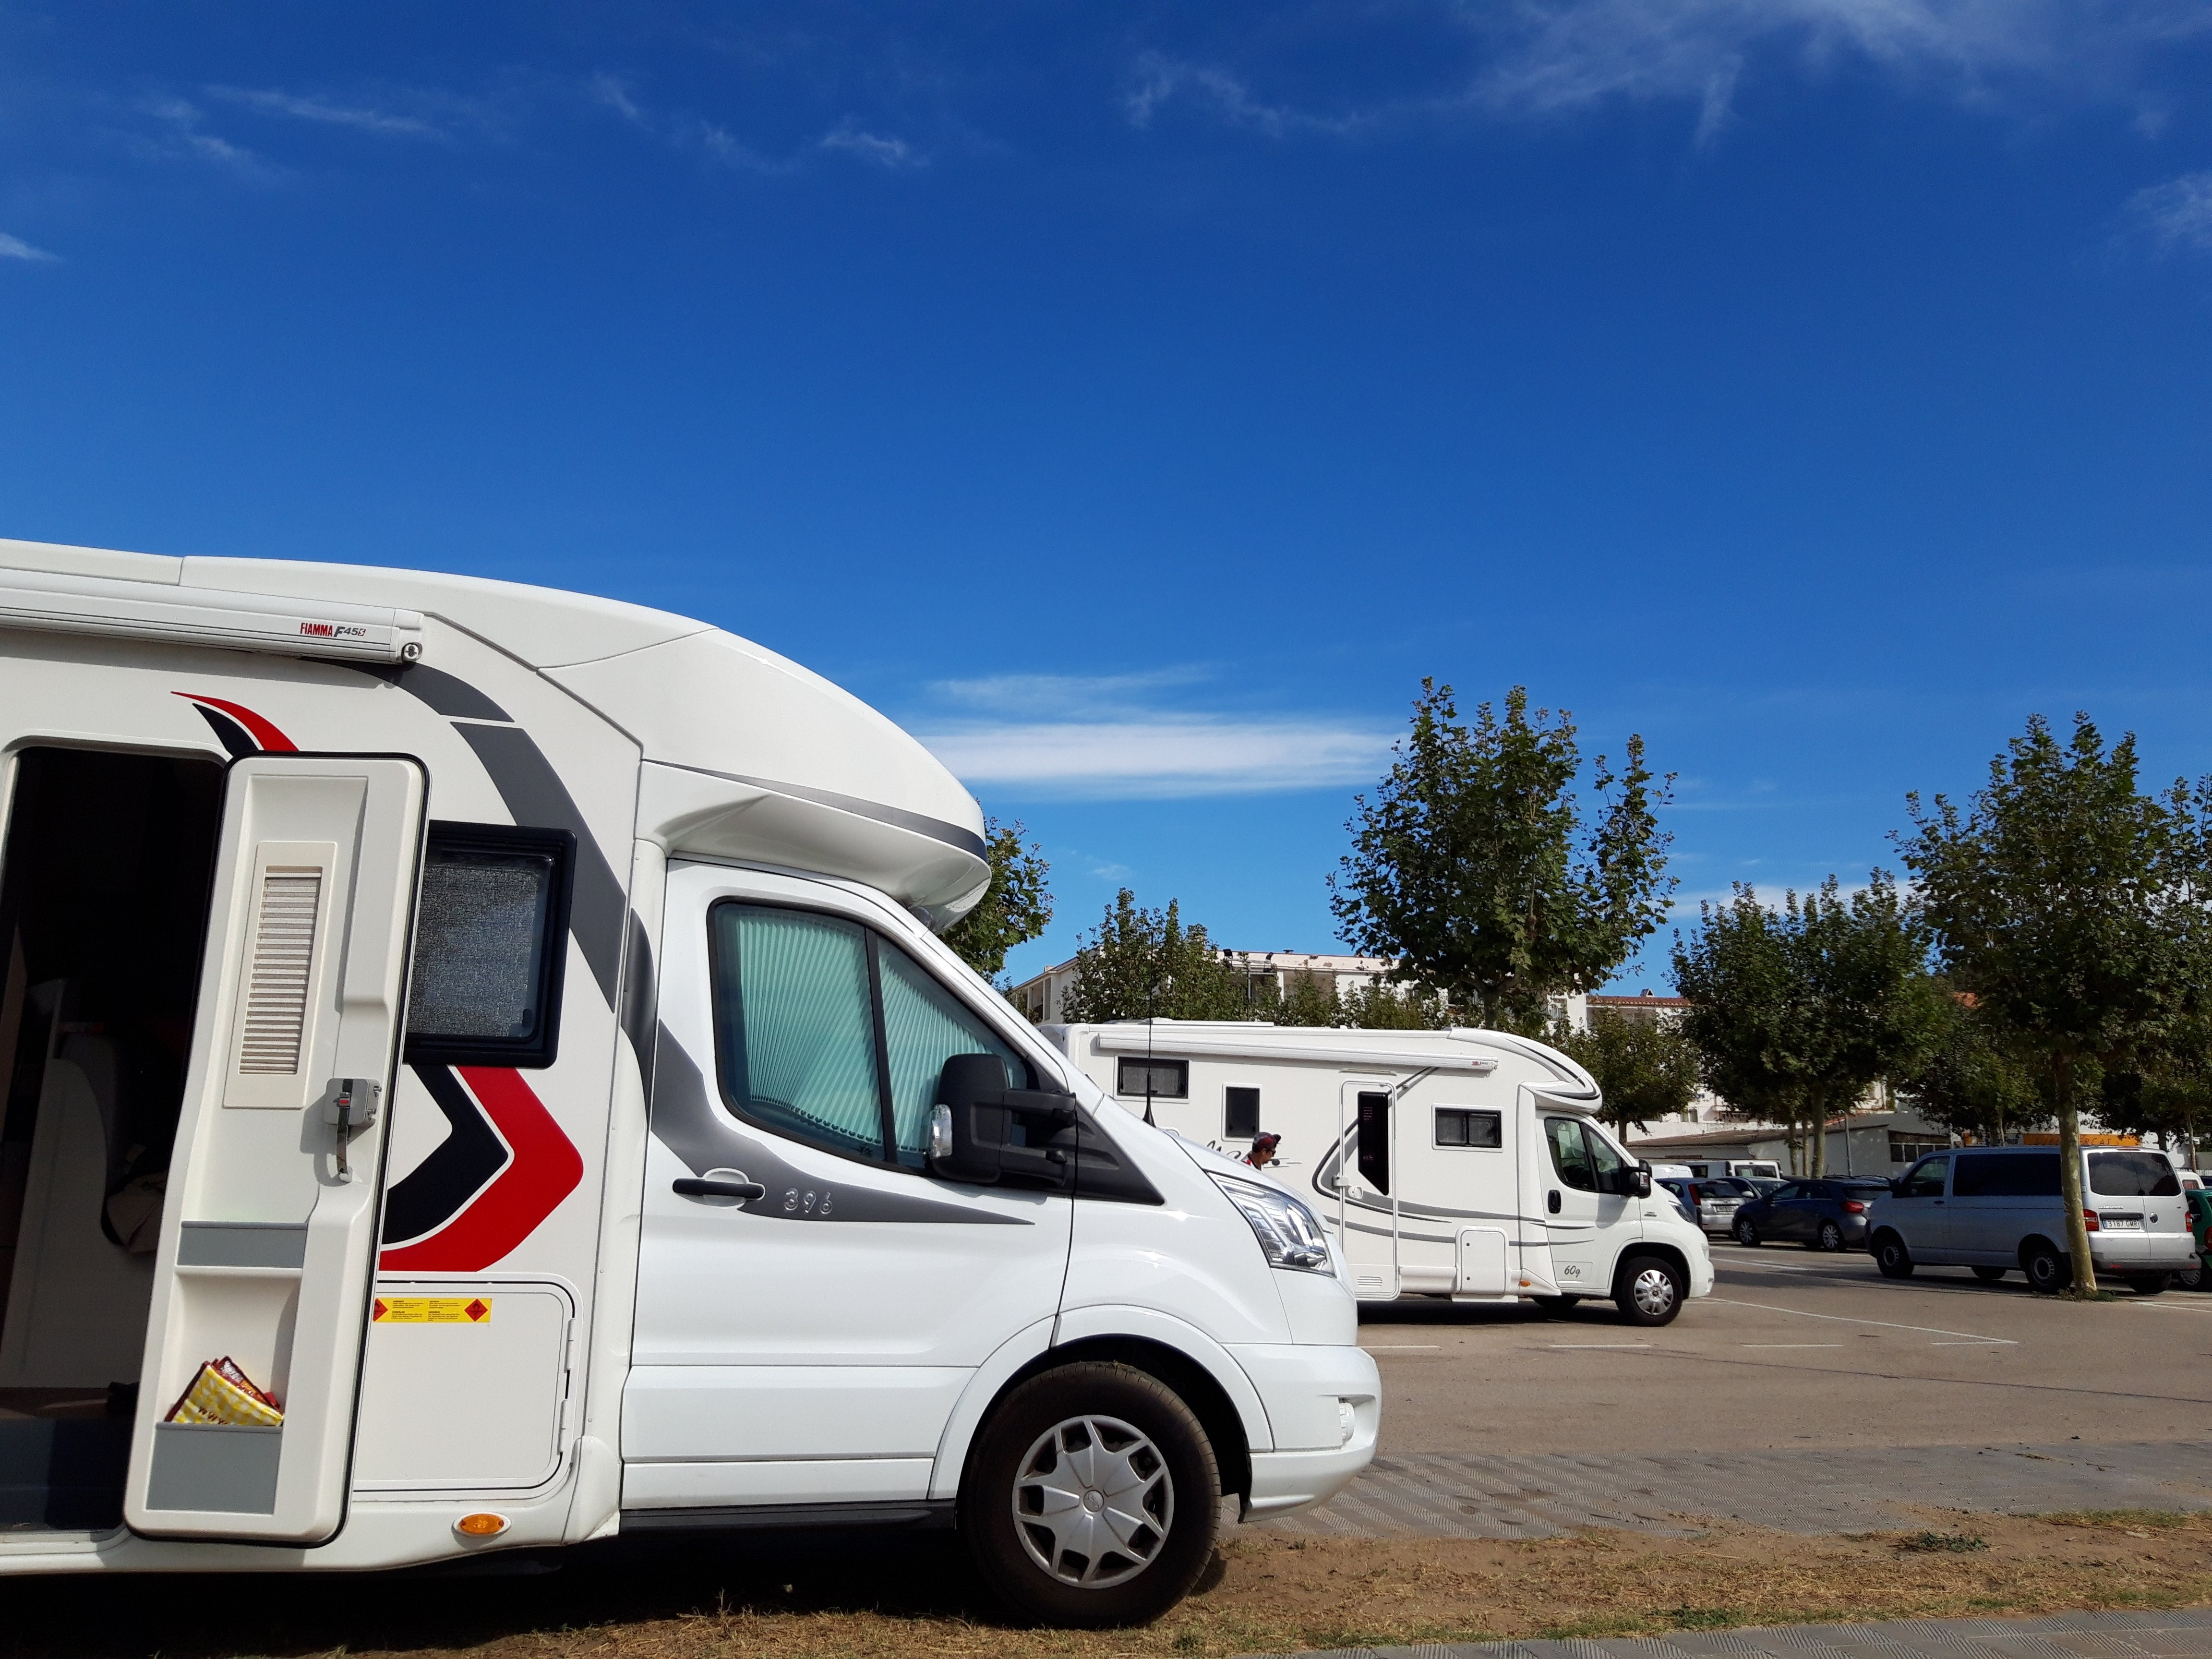 How to test or start traveling by motorhome or camper